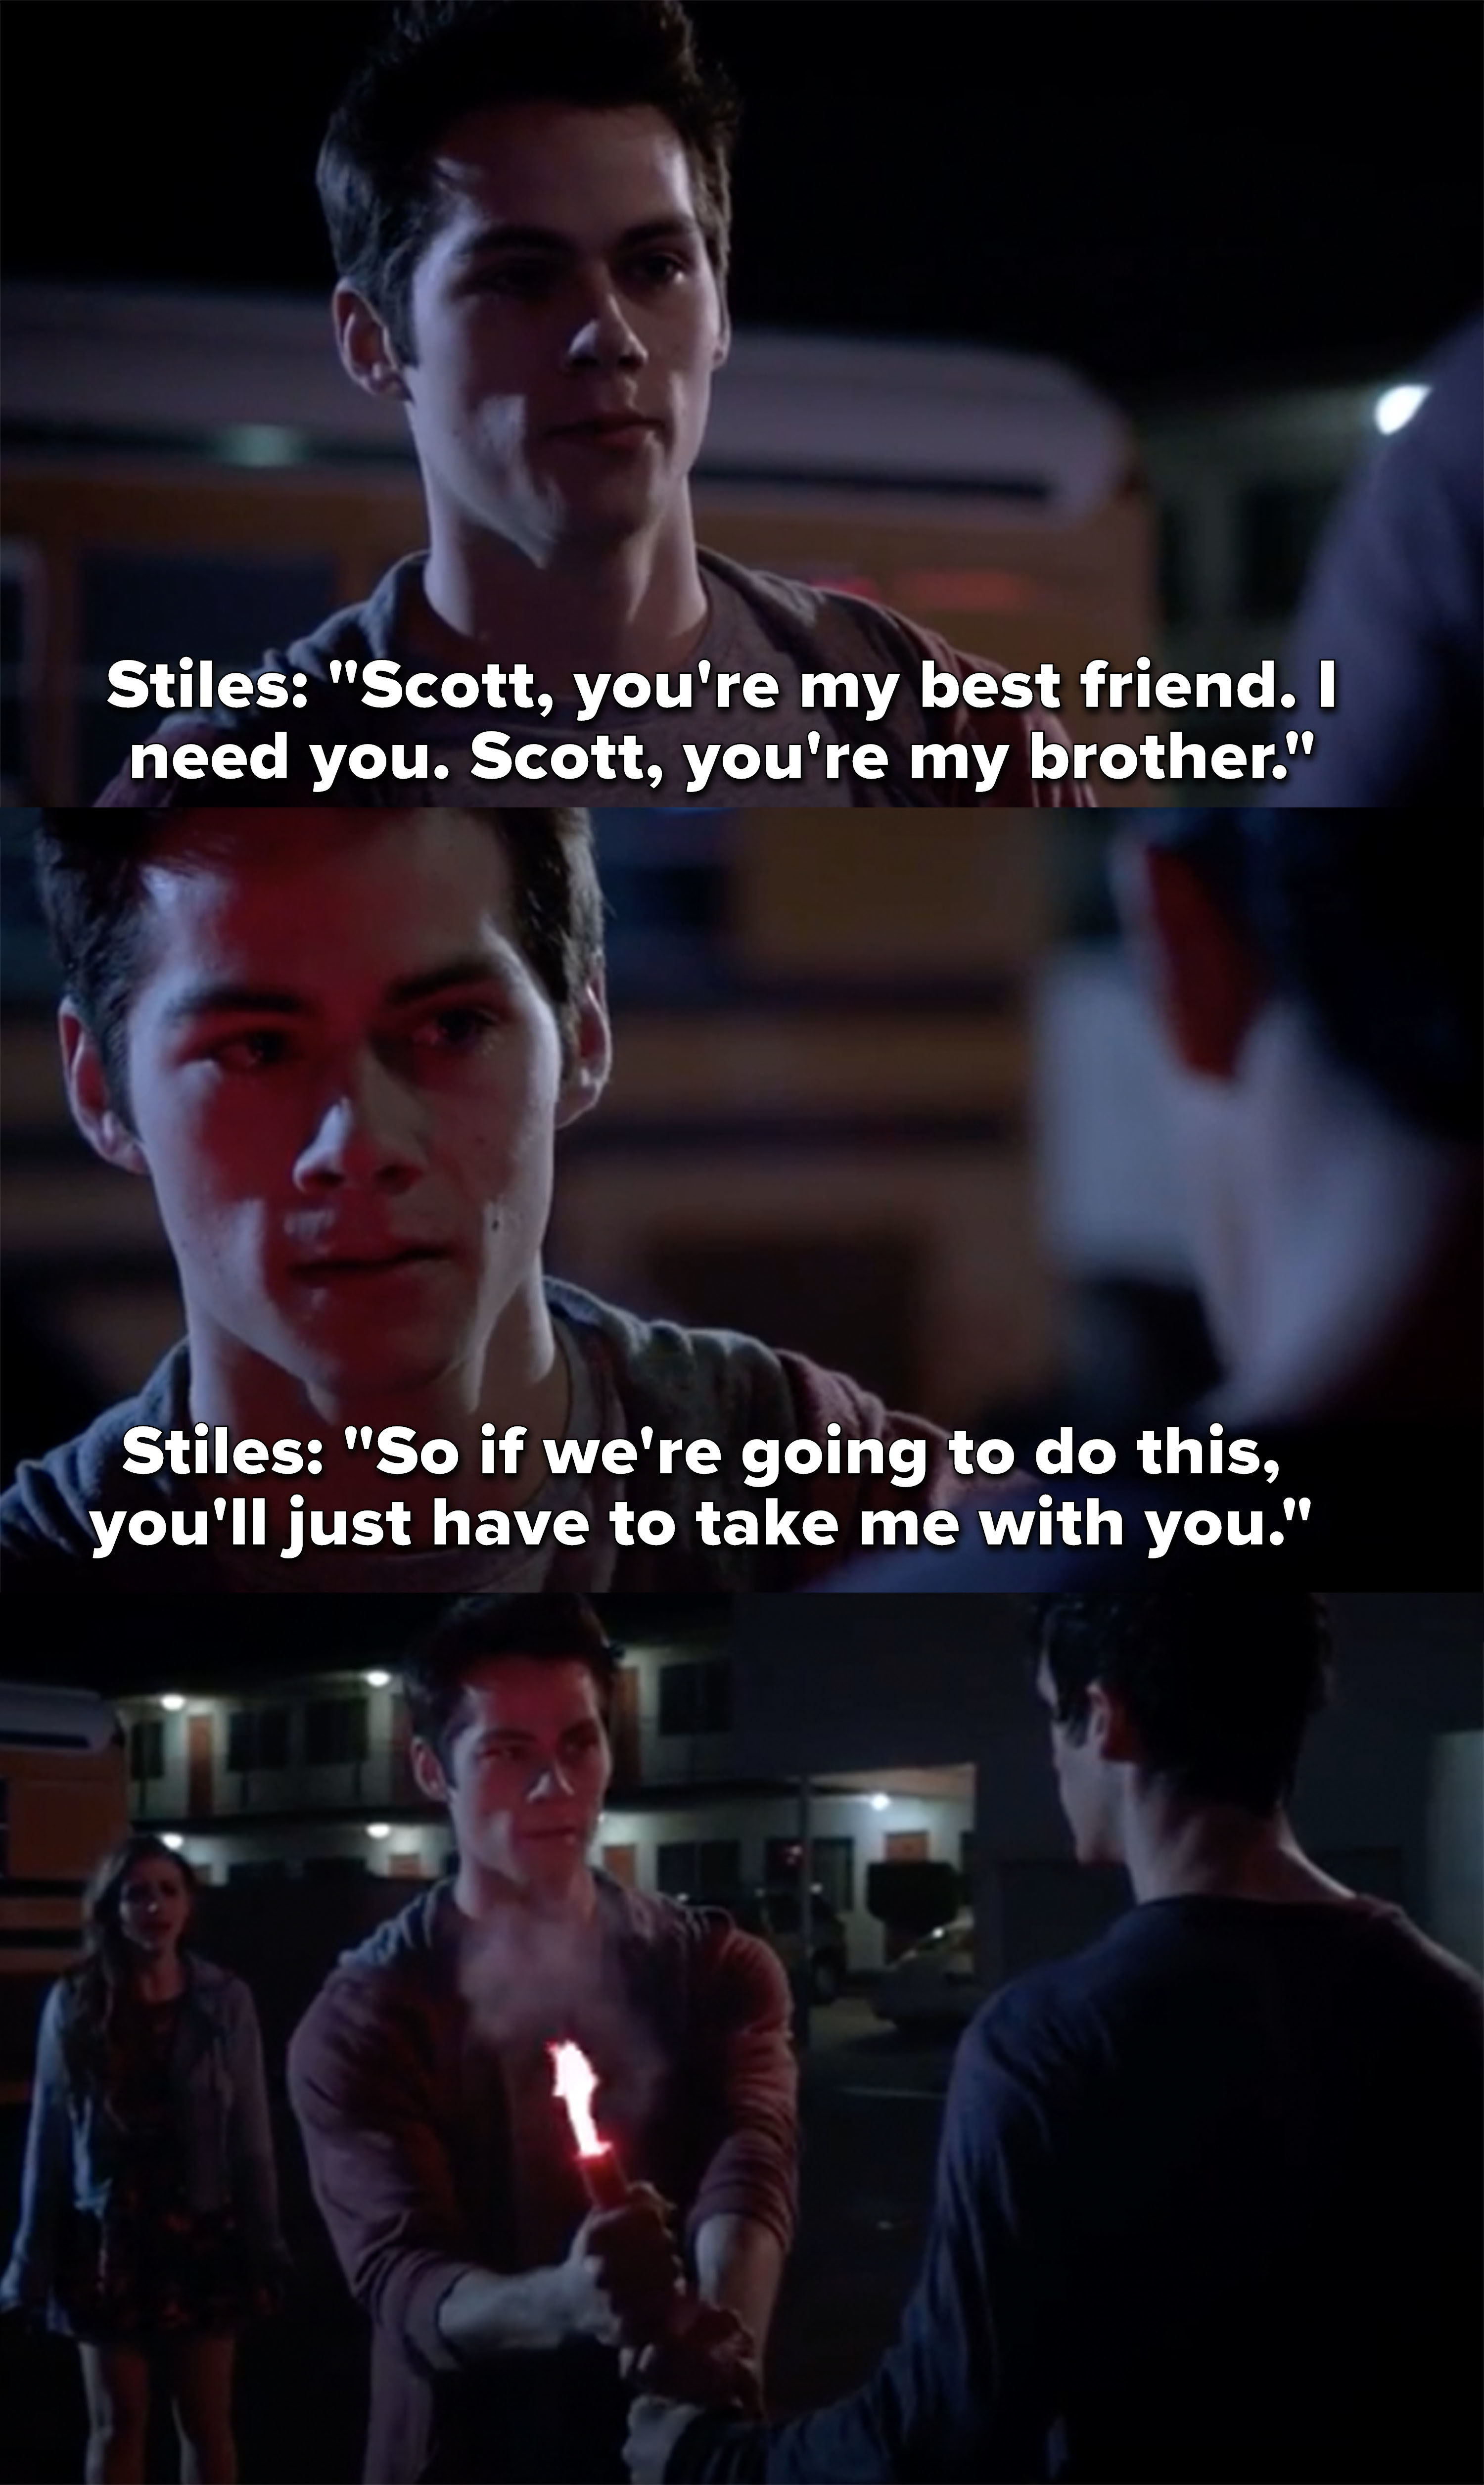 Stiles tells Scott he's his best friend and brother and if he's going to do this, then he has to take him with him